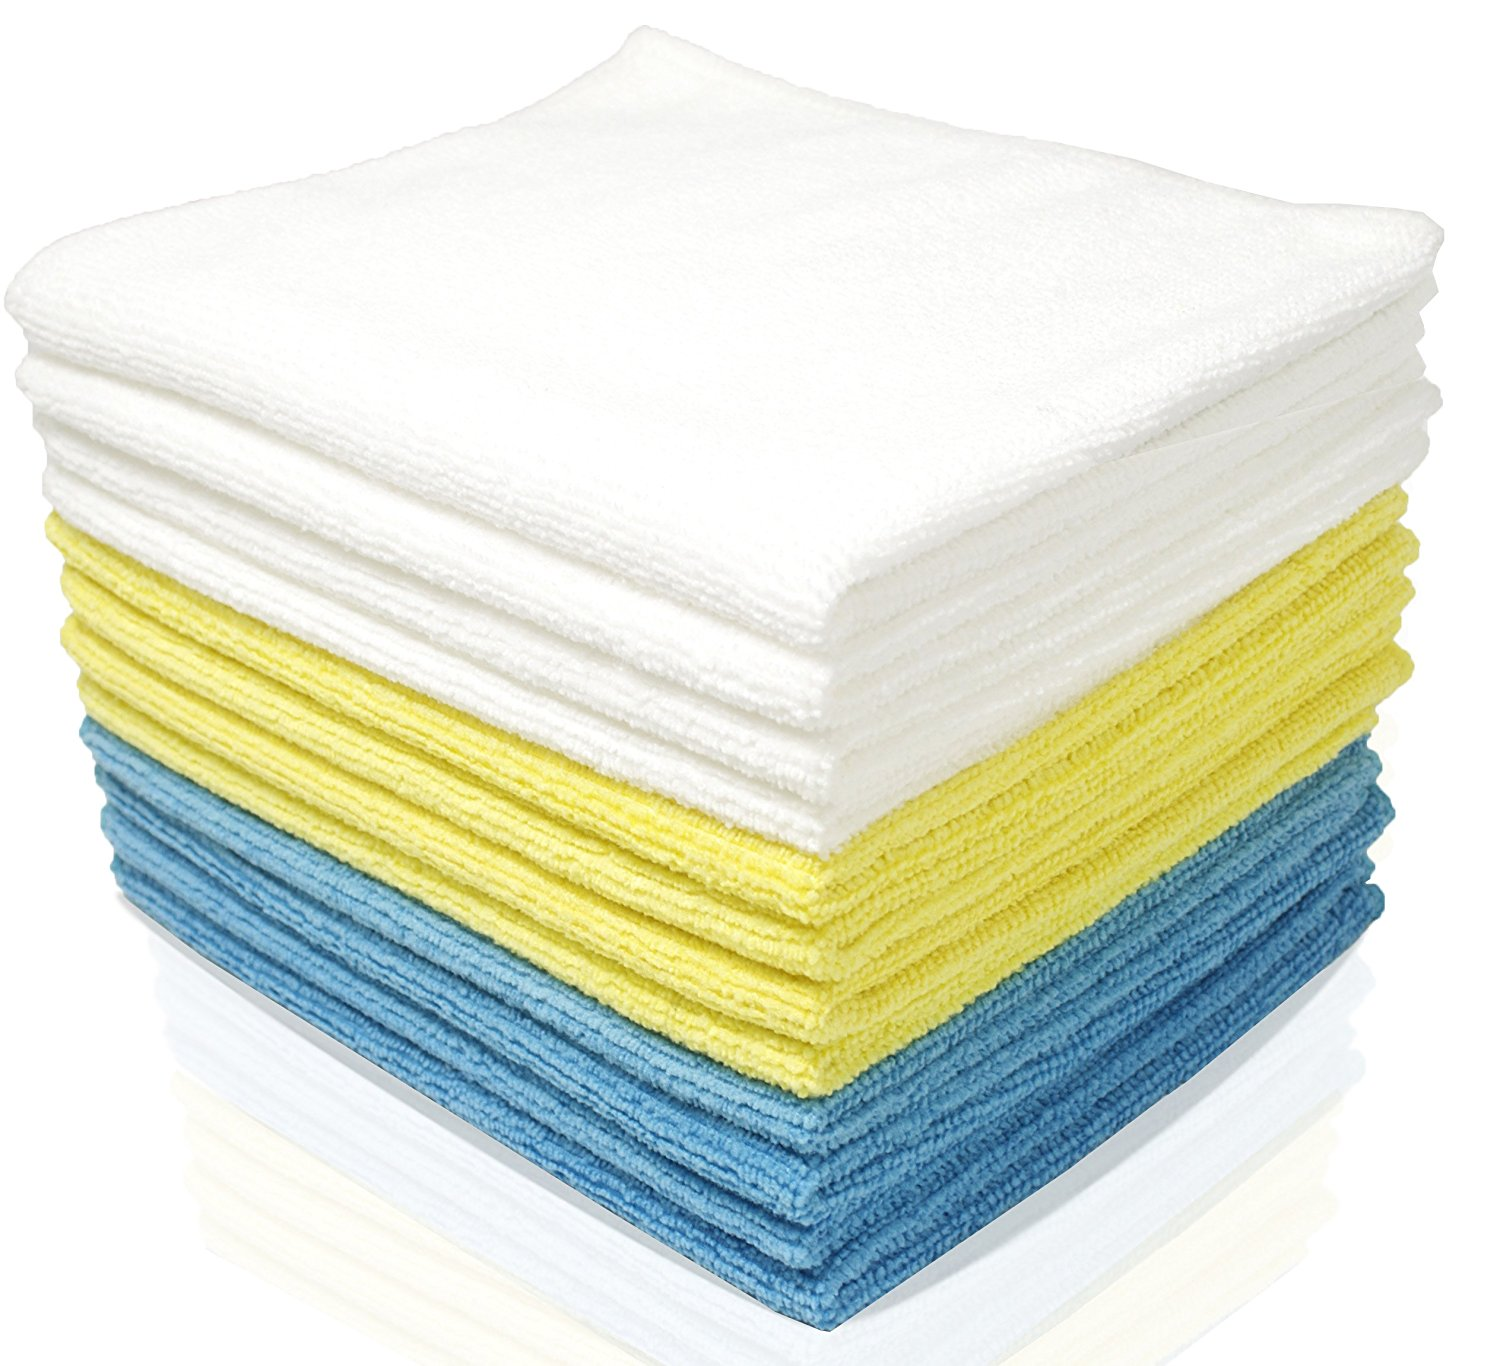 Microfiber Cloth Set: Royal Reusable Microfiber Cleaning Cloth Set (24 Pack) $11.95